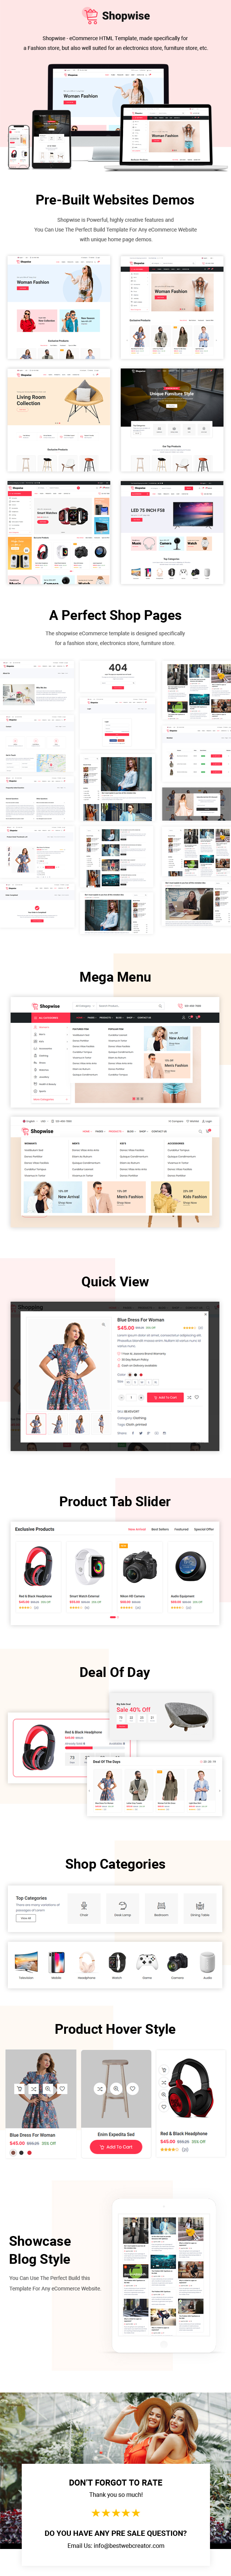 Shopwise-eCommerce-Bootstrap4-html5-template